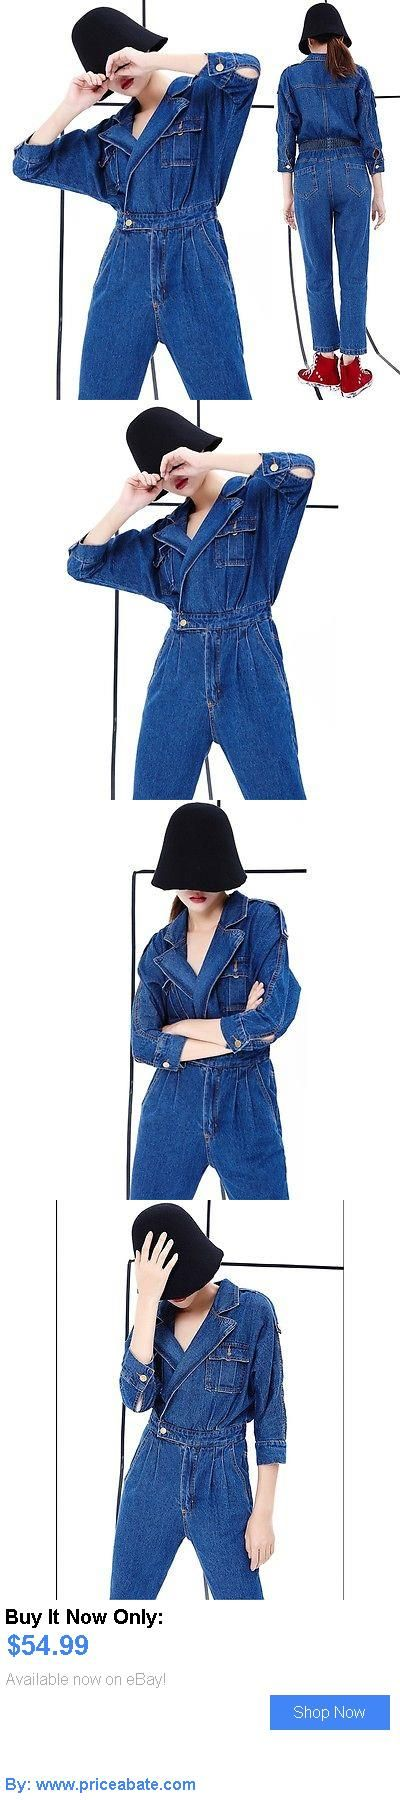 Jumpsuits And Rompers: Autumn Casual Womens Denim Jumpsuits Overalls High Waist Fashion Jeans Playsuit BUY IT NOW ONLY: $54.99 #priceabateJumpsuitsAndRompers OR #priceabate